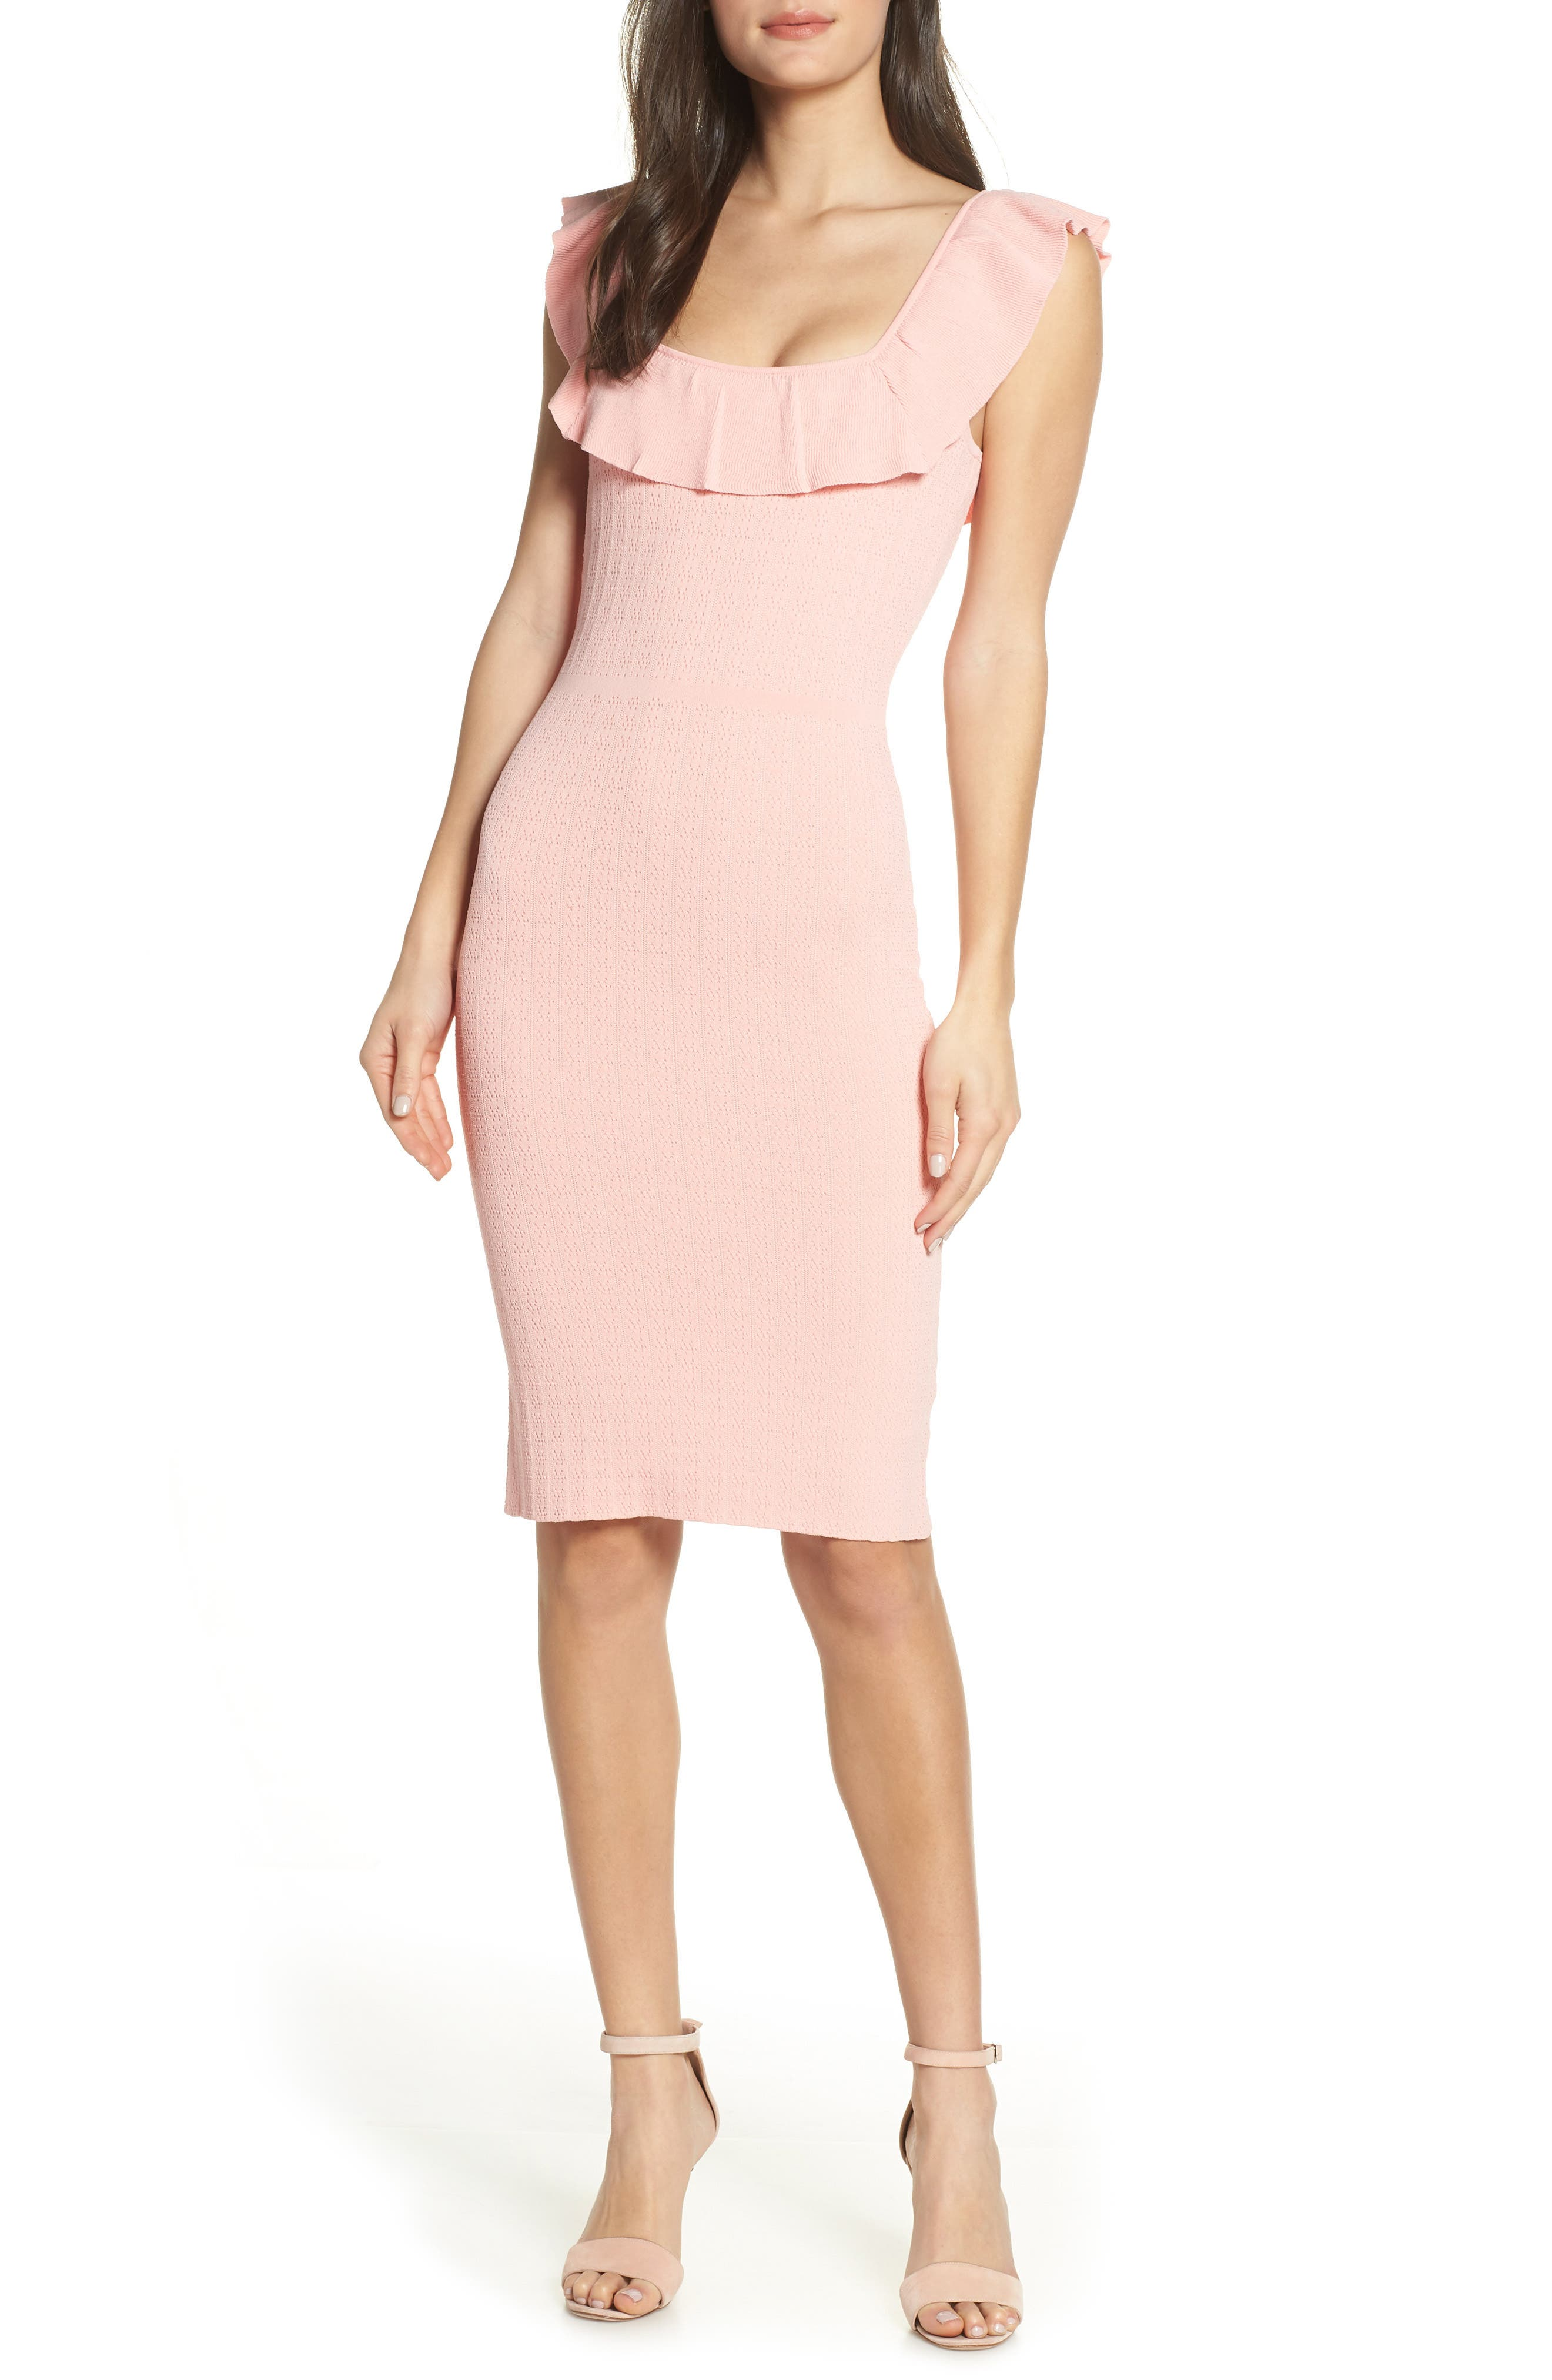 ALI & JAY, Fairy Tale Body-Con Sweater Dress, Main thumbnail 1, color, BUBBLE GUM